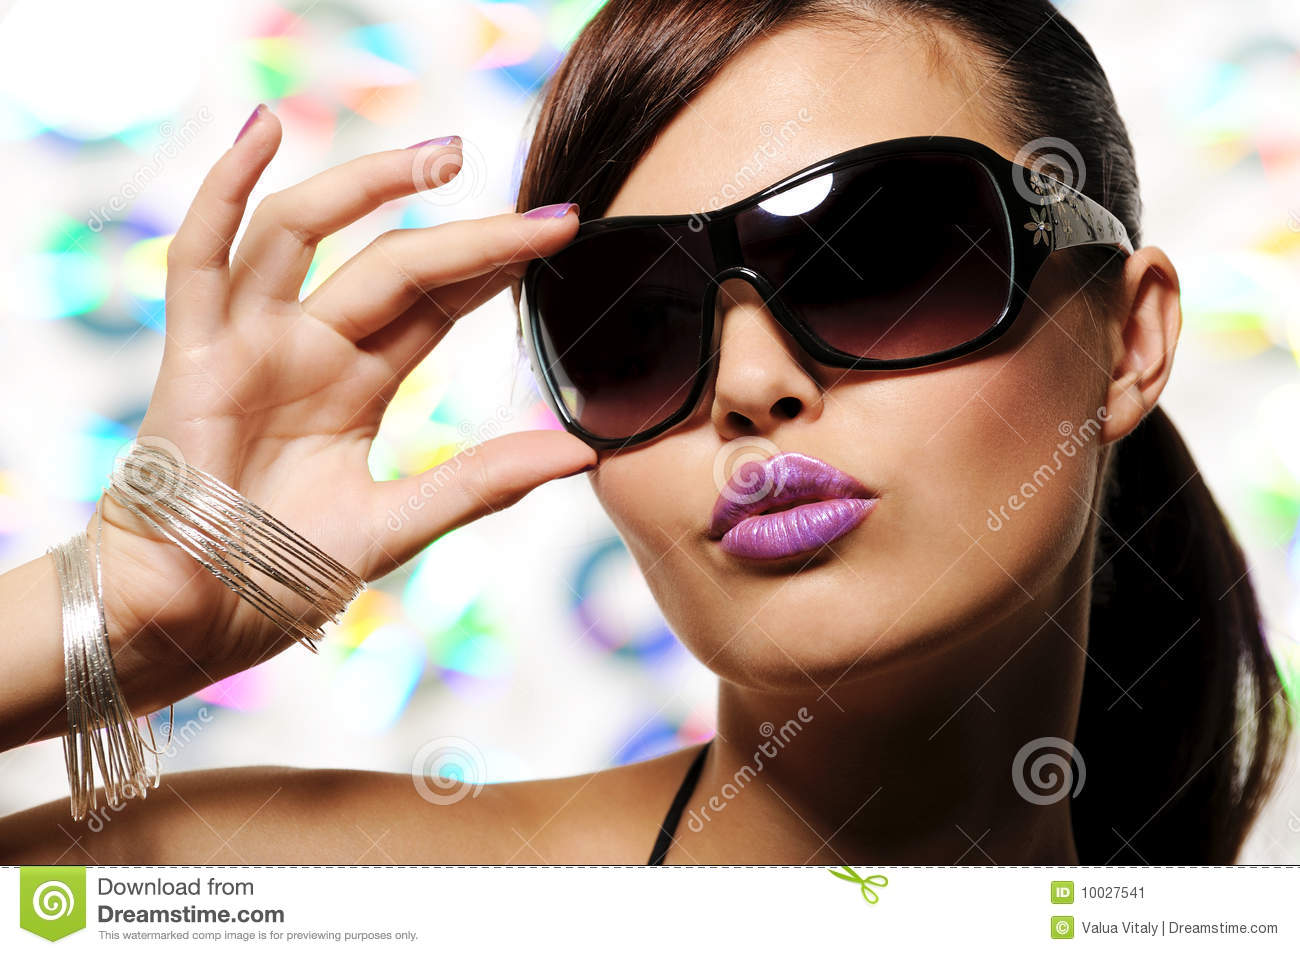 Download Glamour Girl With Sunglasses Stock Image - Image of female, emotion: 10027541